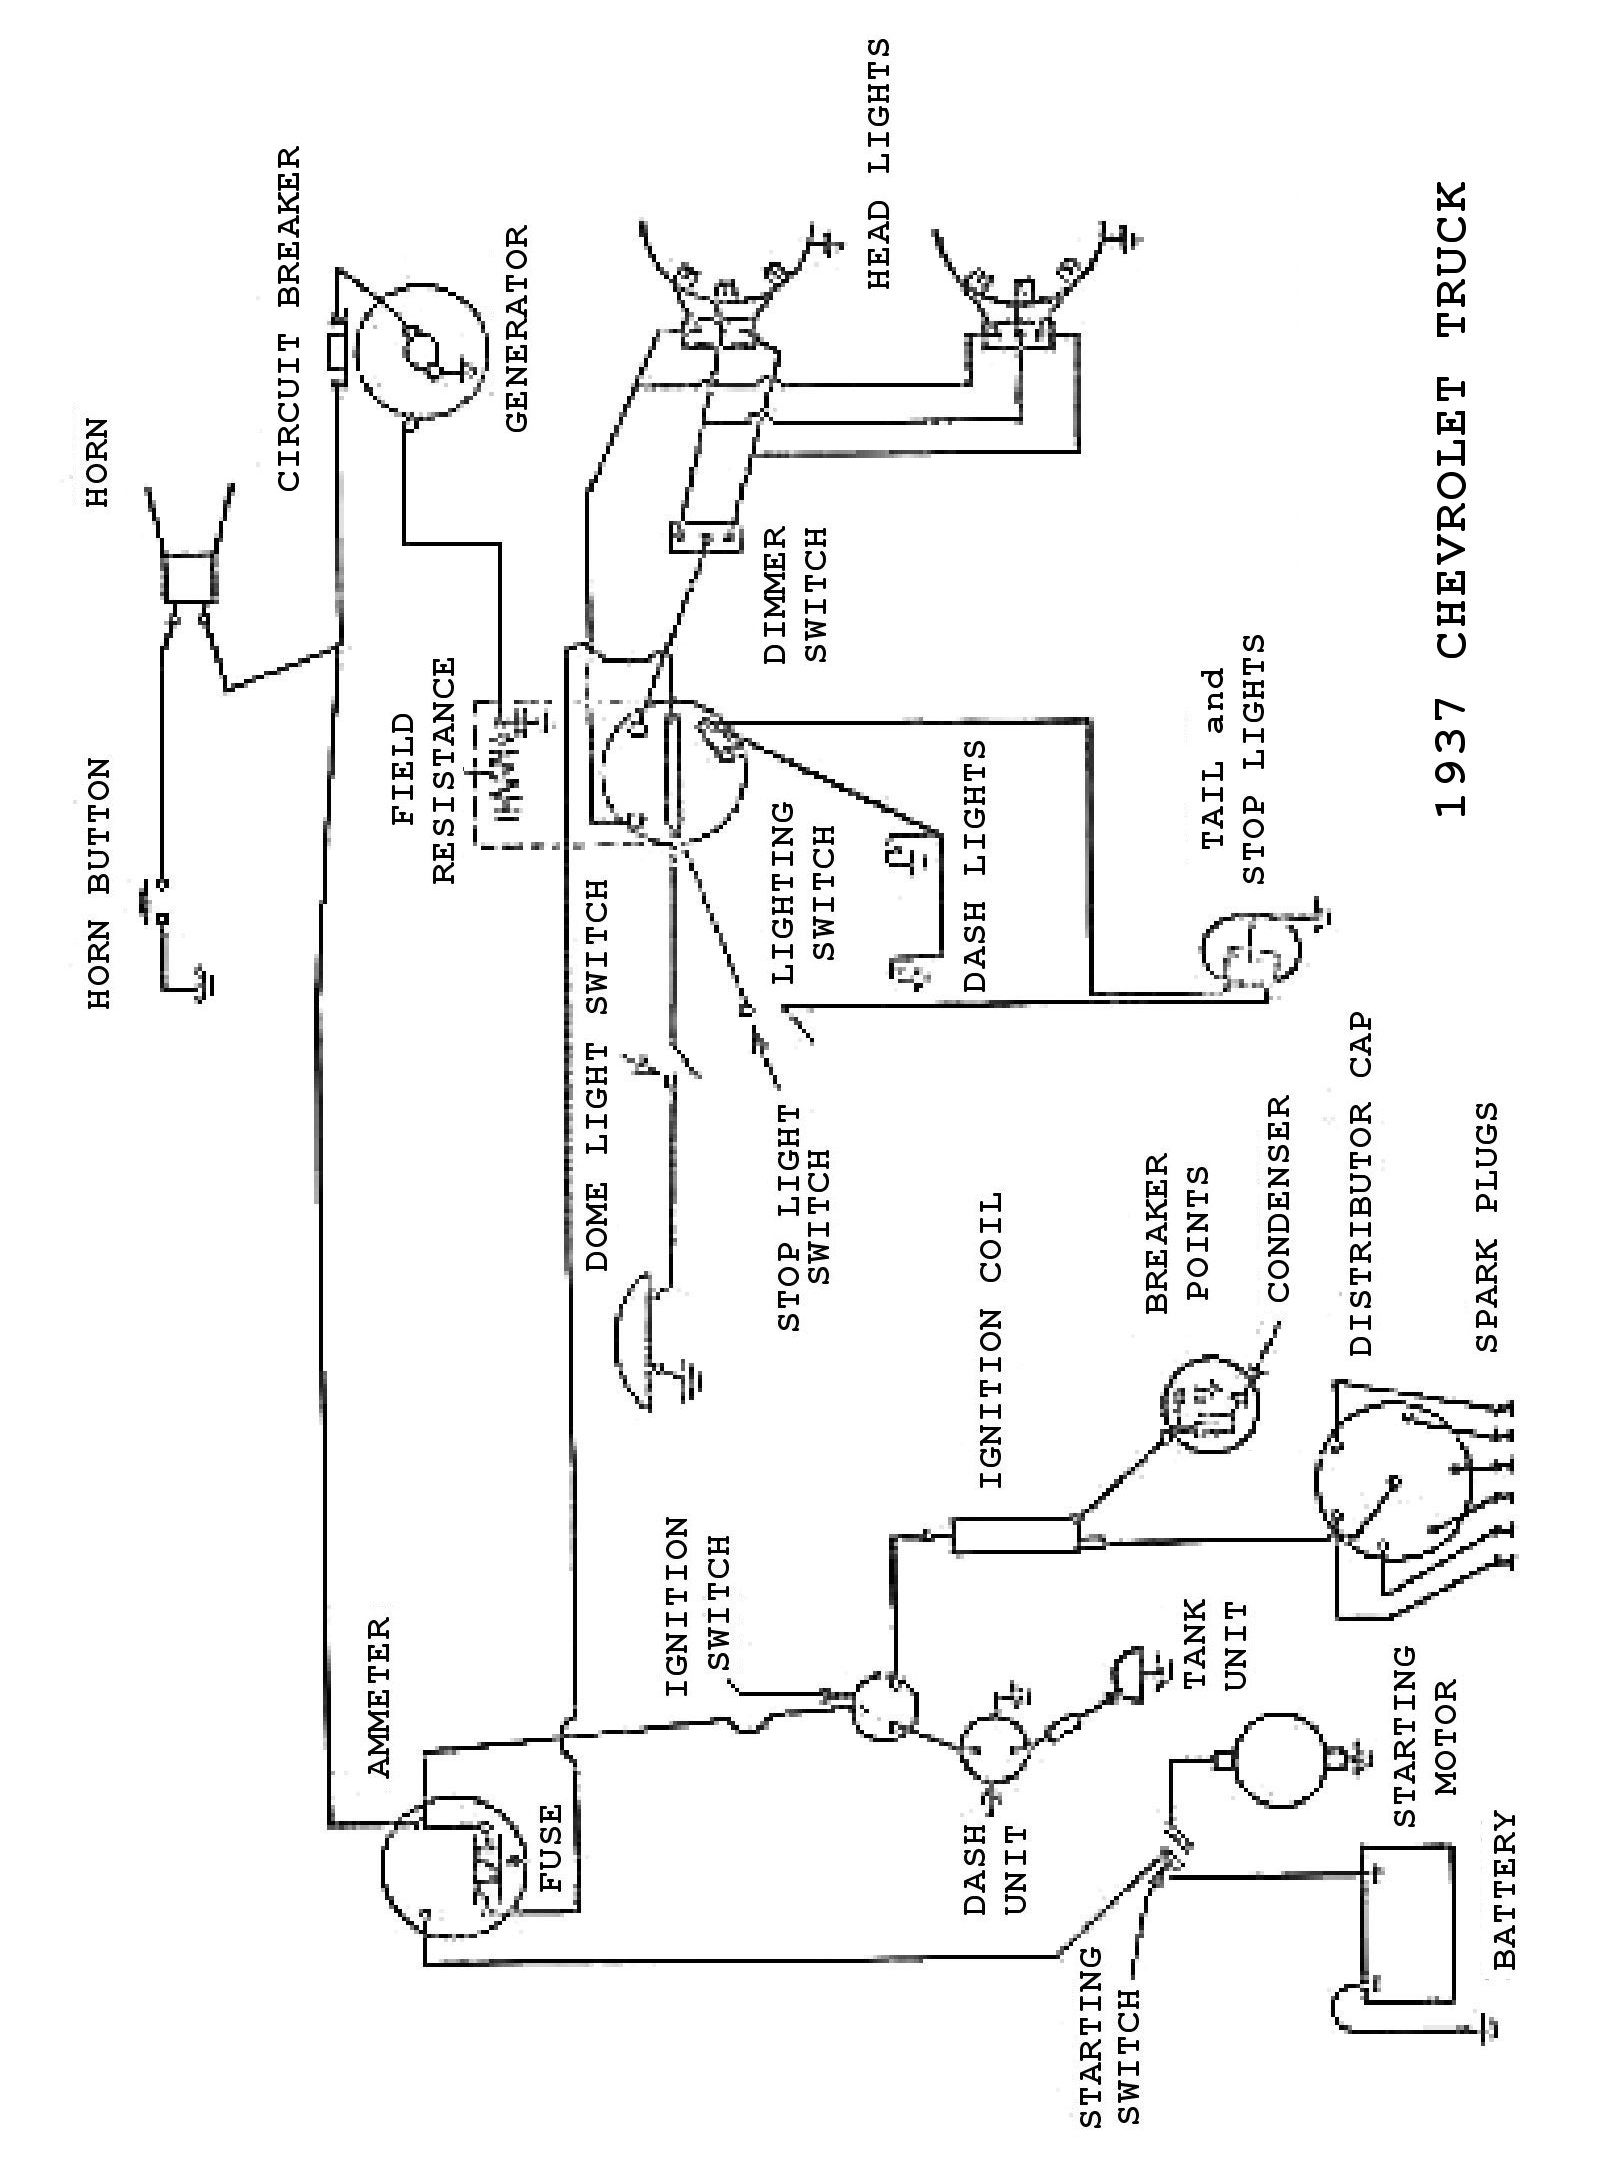 Chevy Wiring Diagrams 1991 Truck Instrument Cluster Diagram 1937